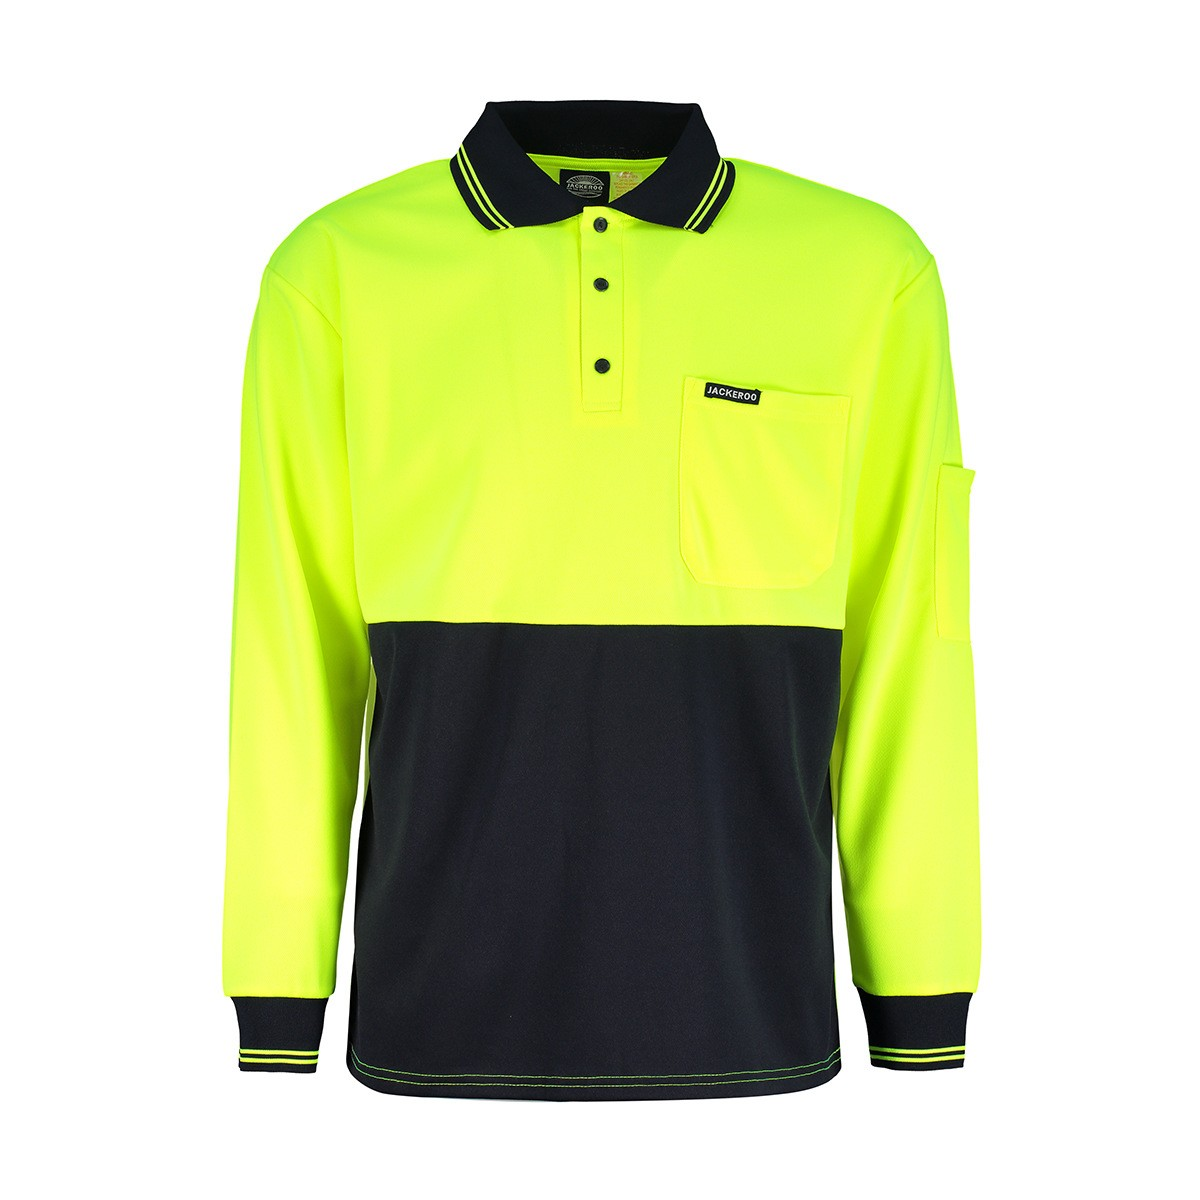 custom long sleeve yellow fluro